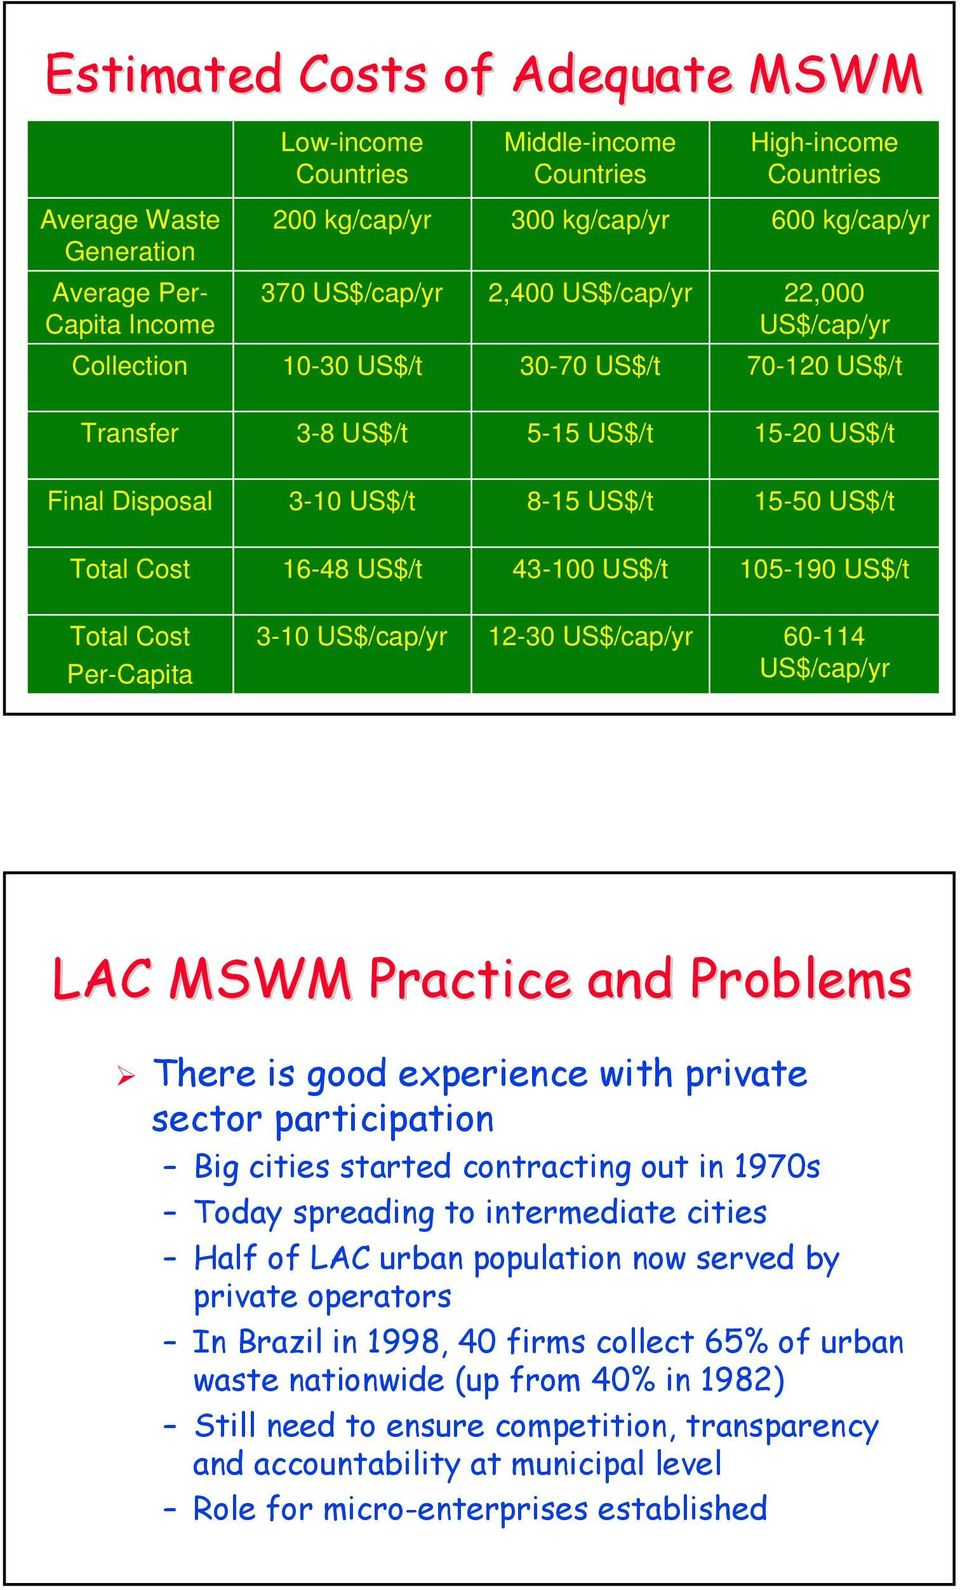 16-48 US$/t 43-100 US$/t 105-190 US$/t Total Cost Per-Capita 3-10 US$/cap/yr 12-30 US$/cap/yr 60-114 US$/cap/yr LAC MSWM Practice and Problems There is good experience with private sector